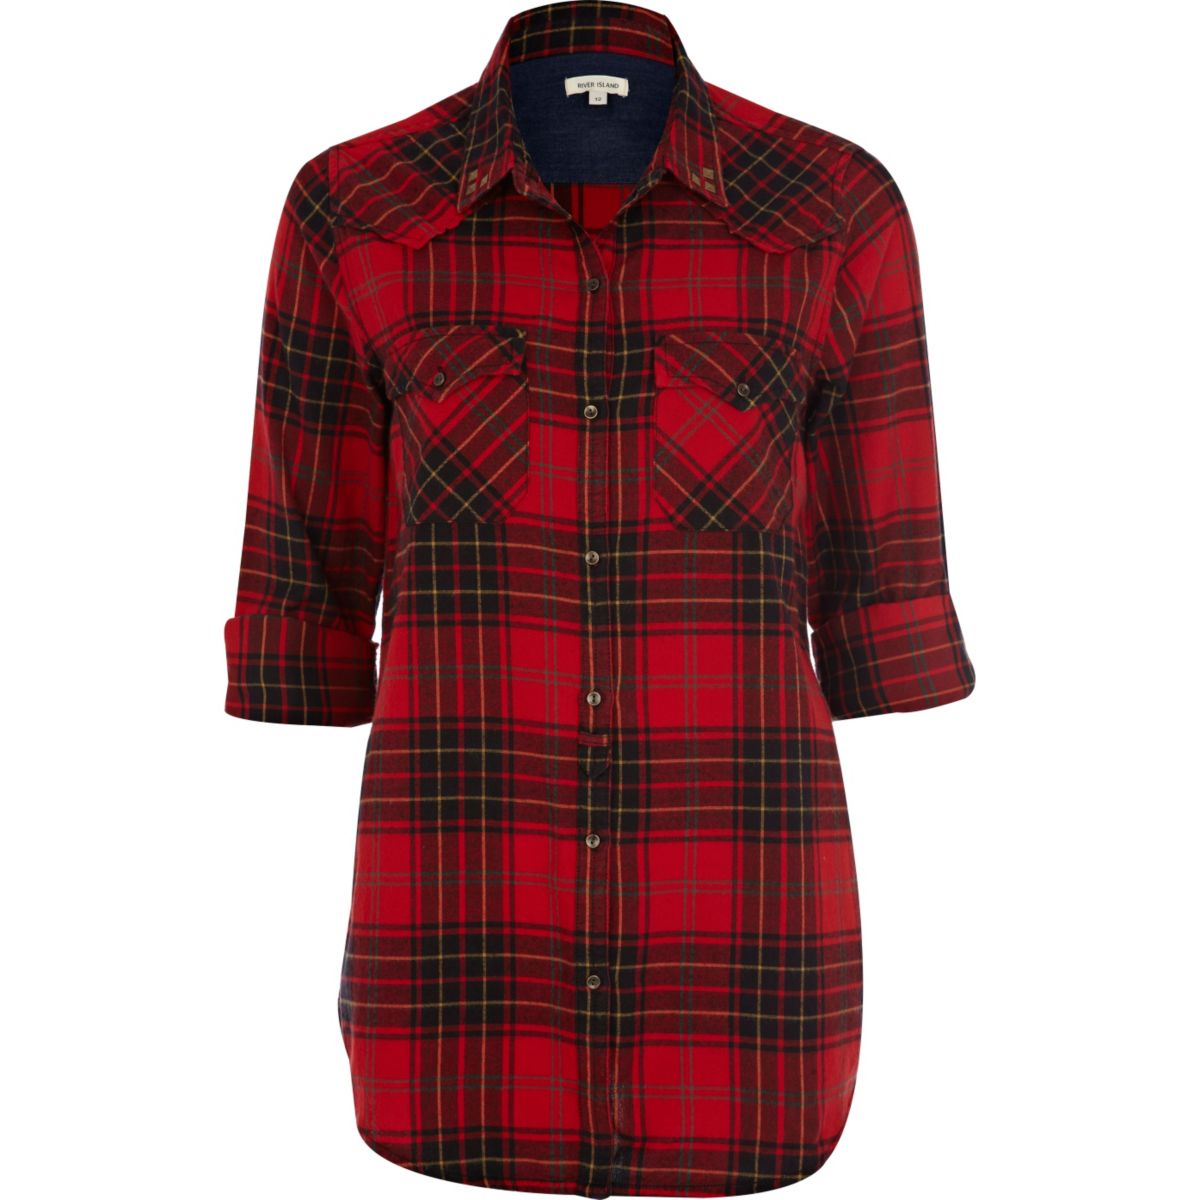 White Mark Women's Piper Plaid Tunic Top is made from a soft plaid fabric. Featuring a button-front design and an allover yarn-dyed woven plaid pattern. Made with long sleeves and buttoned cuffs that roll and tab to 3/4 length/5(4).